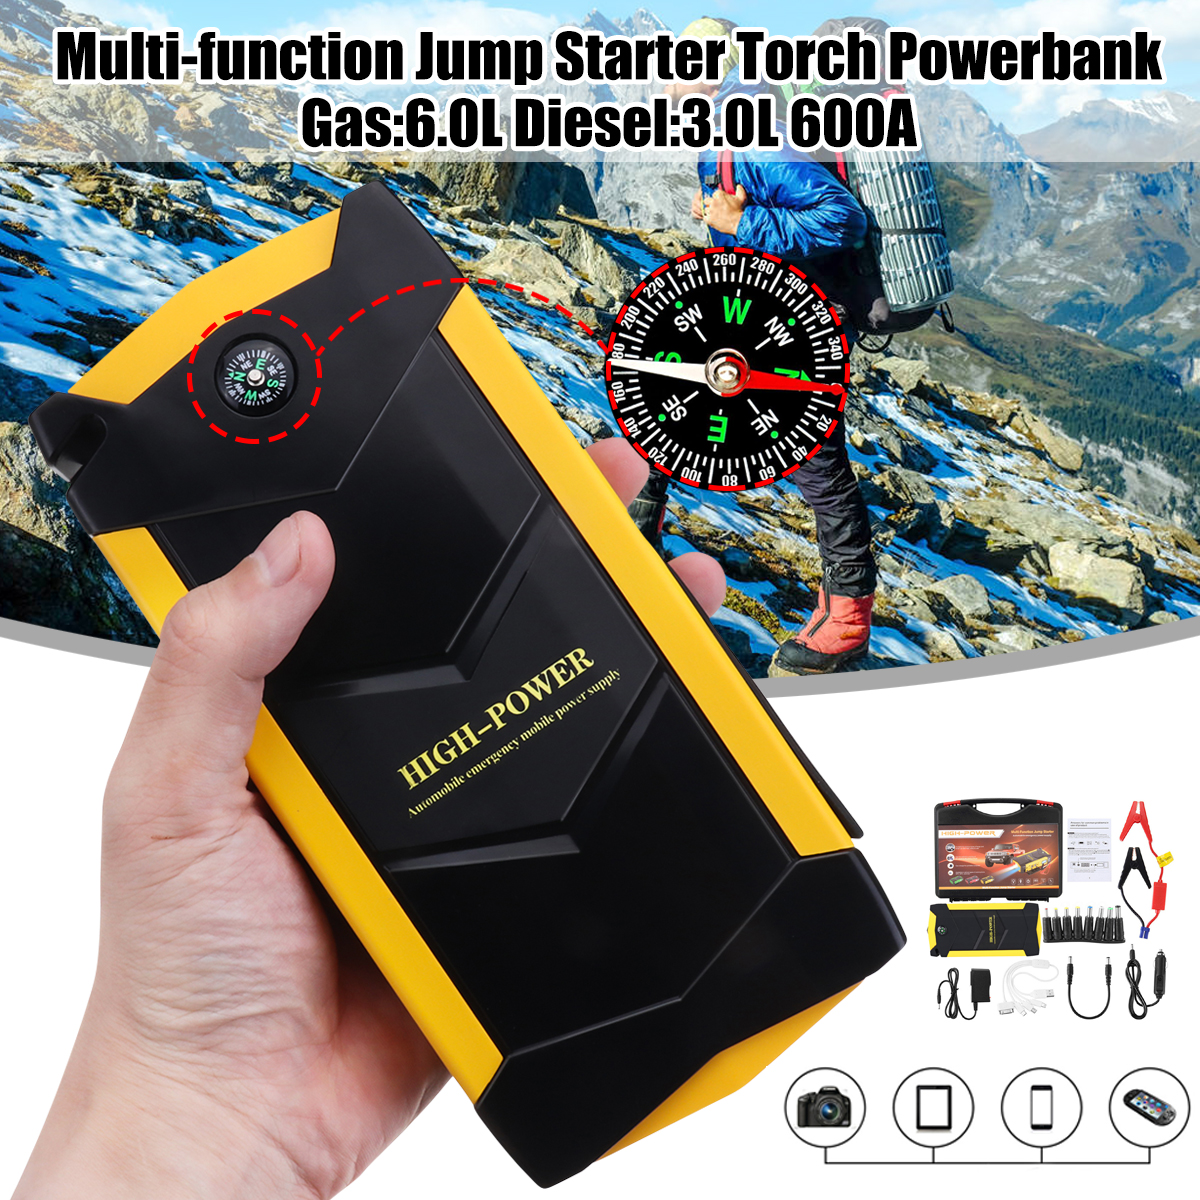 82800mAh 12V 4USB High Power Car Battery Charger Starting Car Jump Starter Booster Power Bank Tool Kit For Auto Starting Device 12v mini portable 82800mah led car jump starter engine auto emergency starting device power bank car phone charger with 4usb